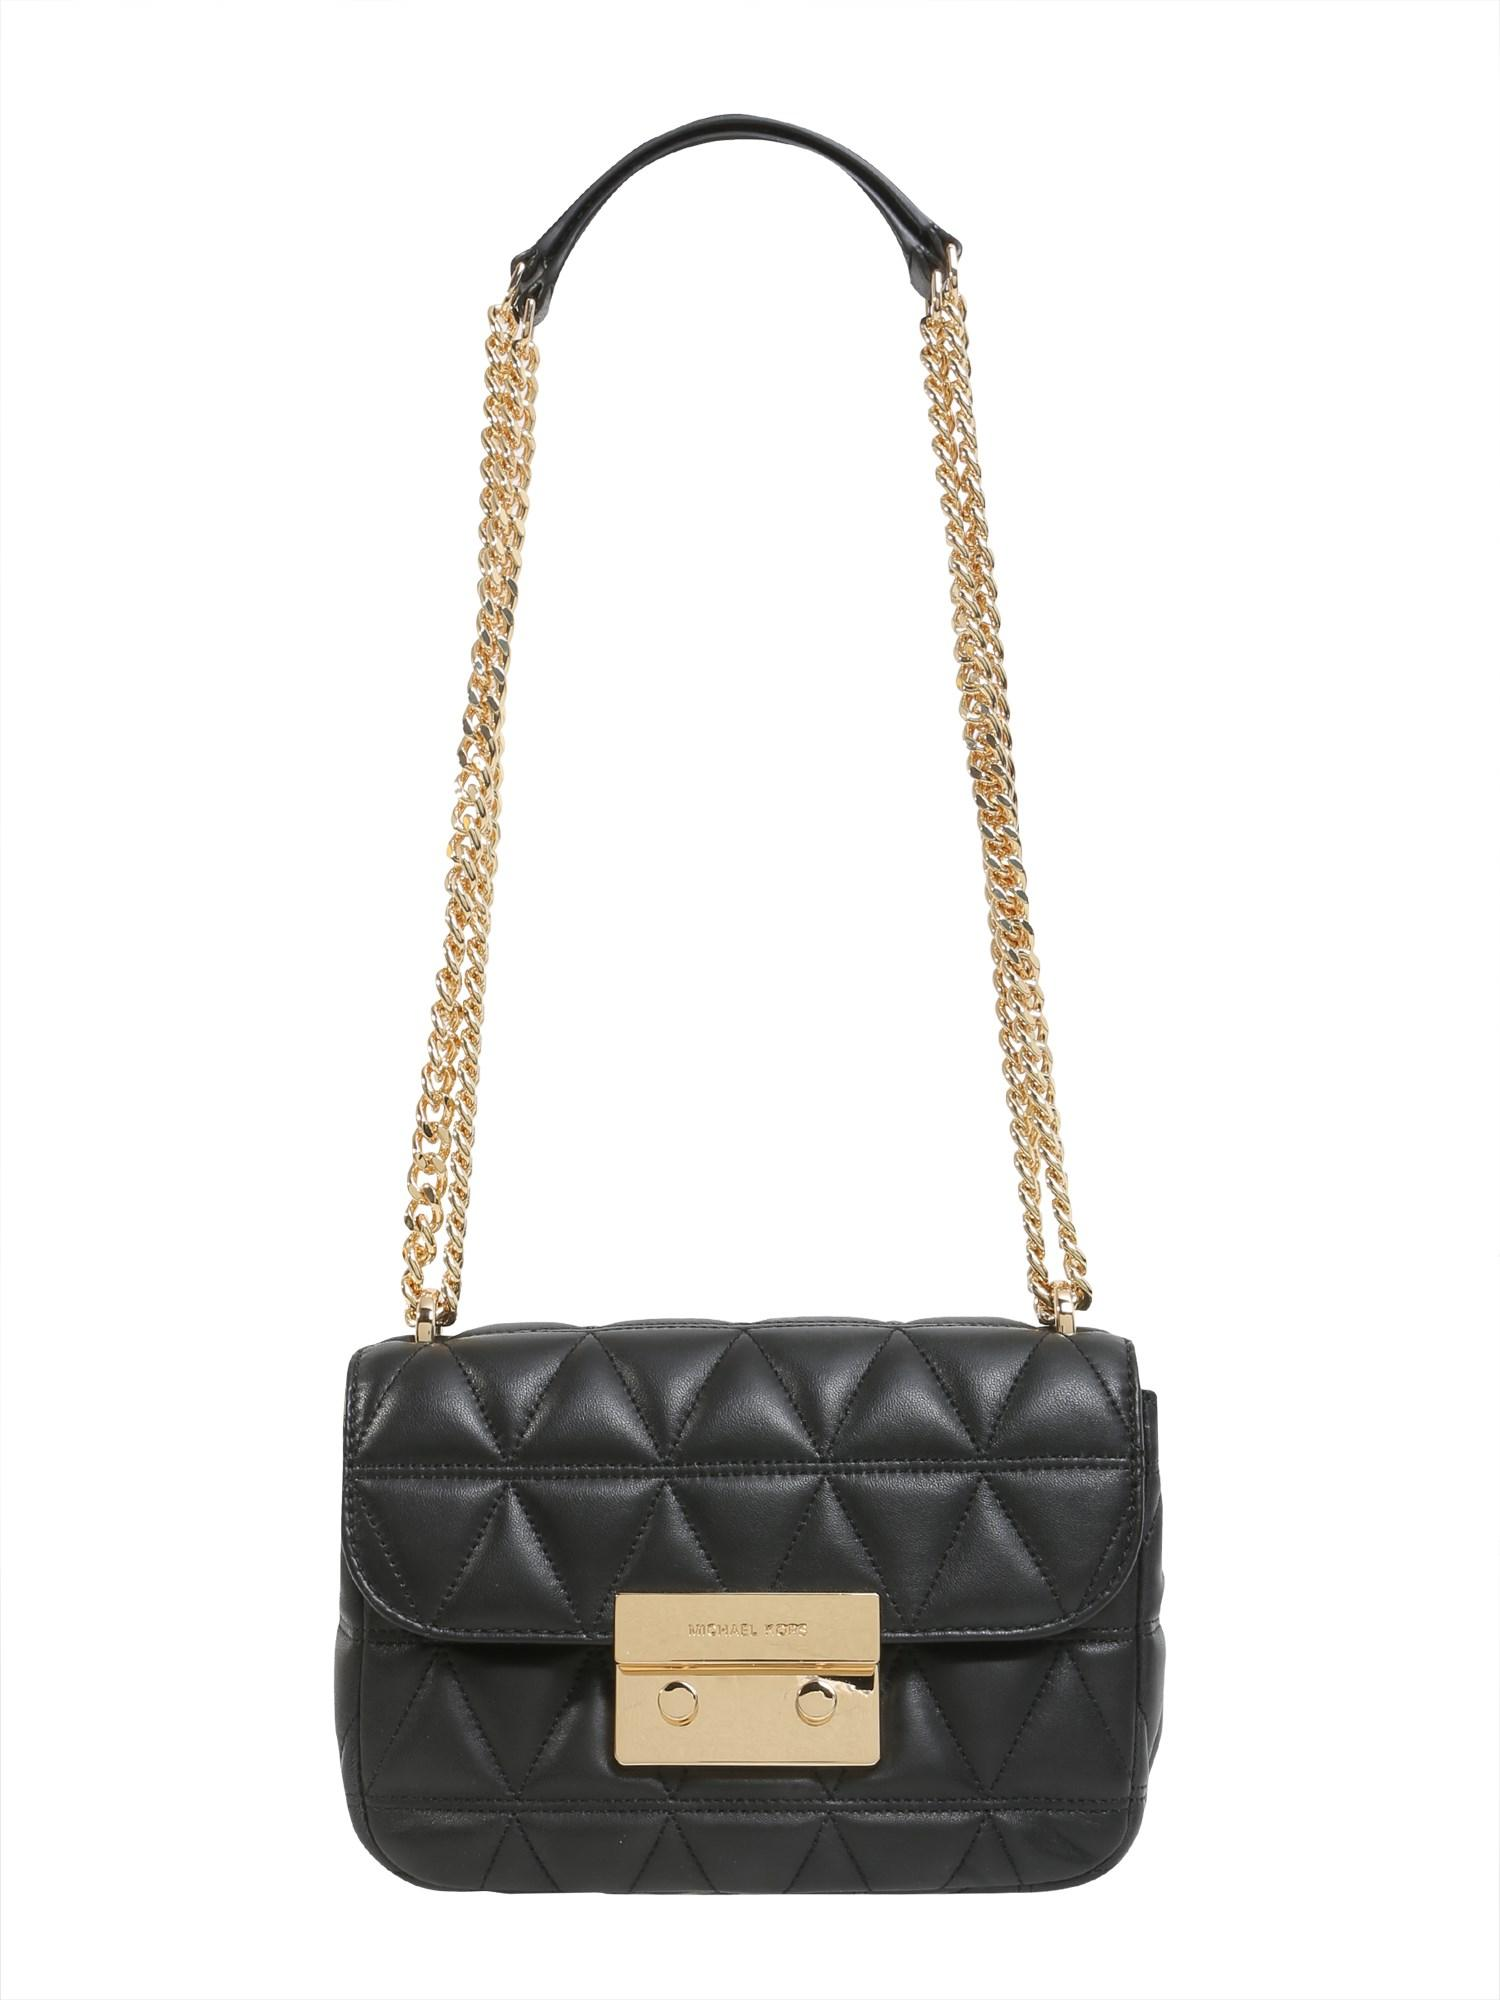 3fe5bd512456 MICHAEL Michael Kors Sloan Small Messenger Bag In Quilted Leather in Black  - Lyst